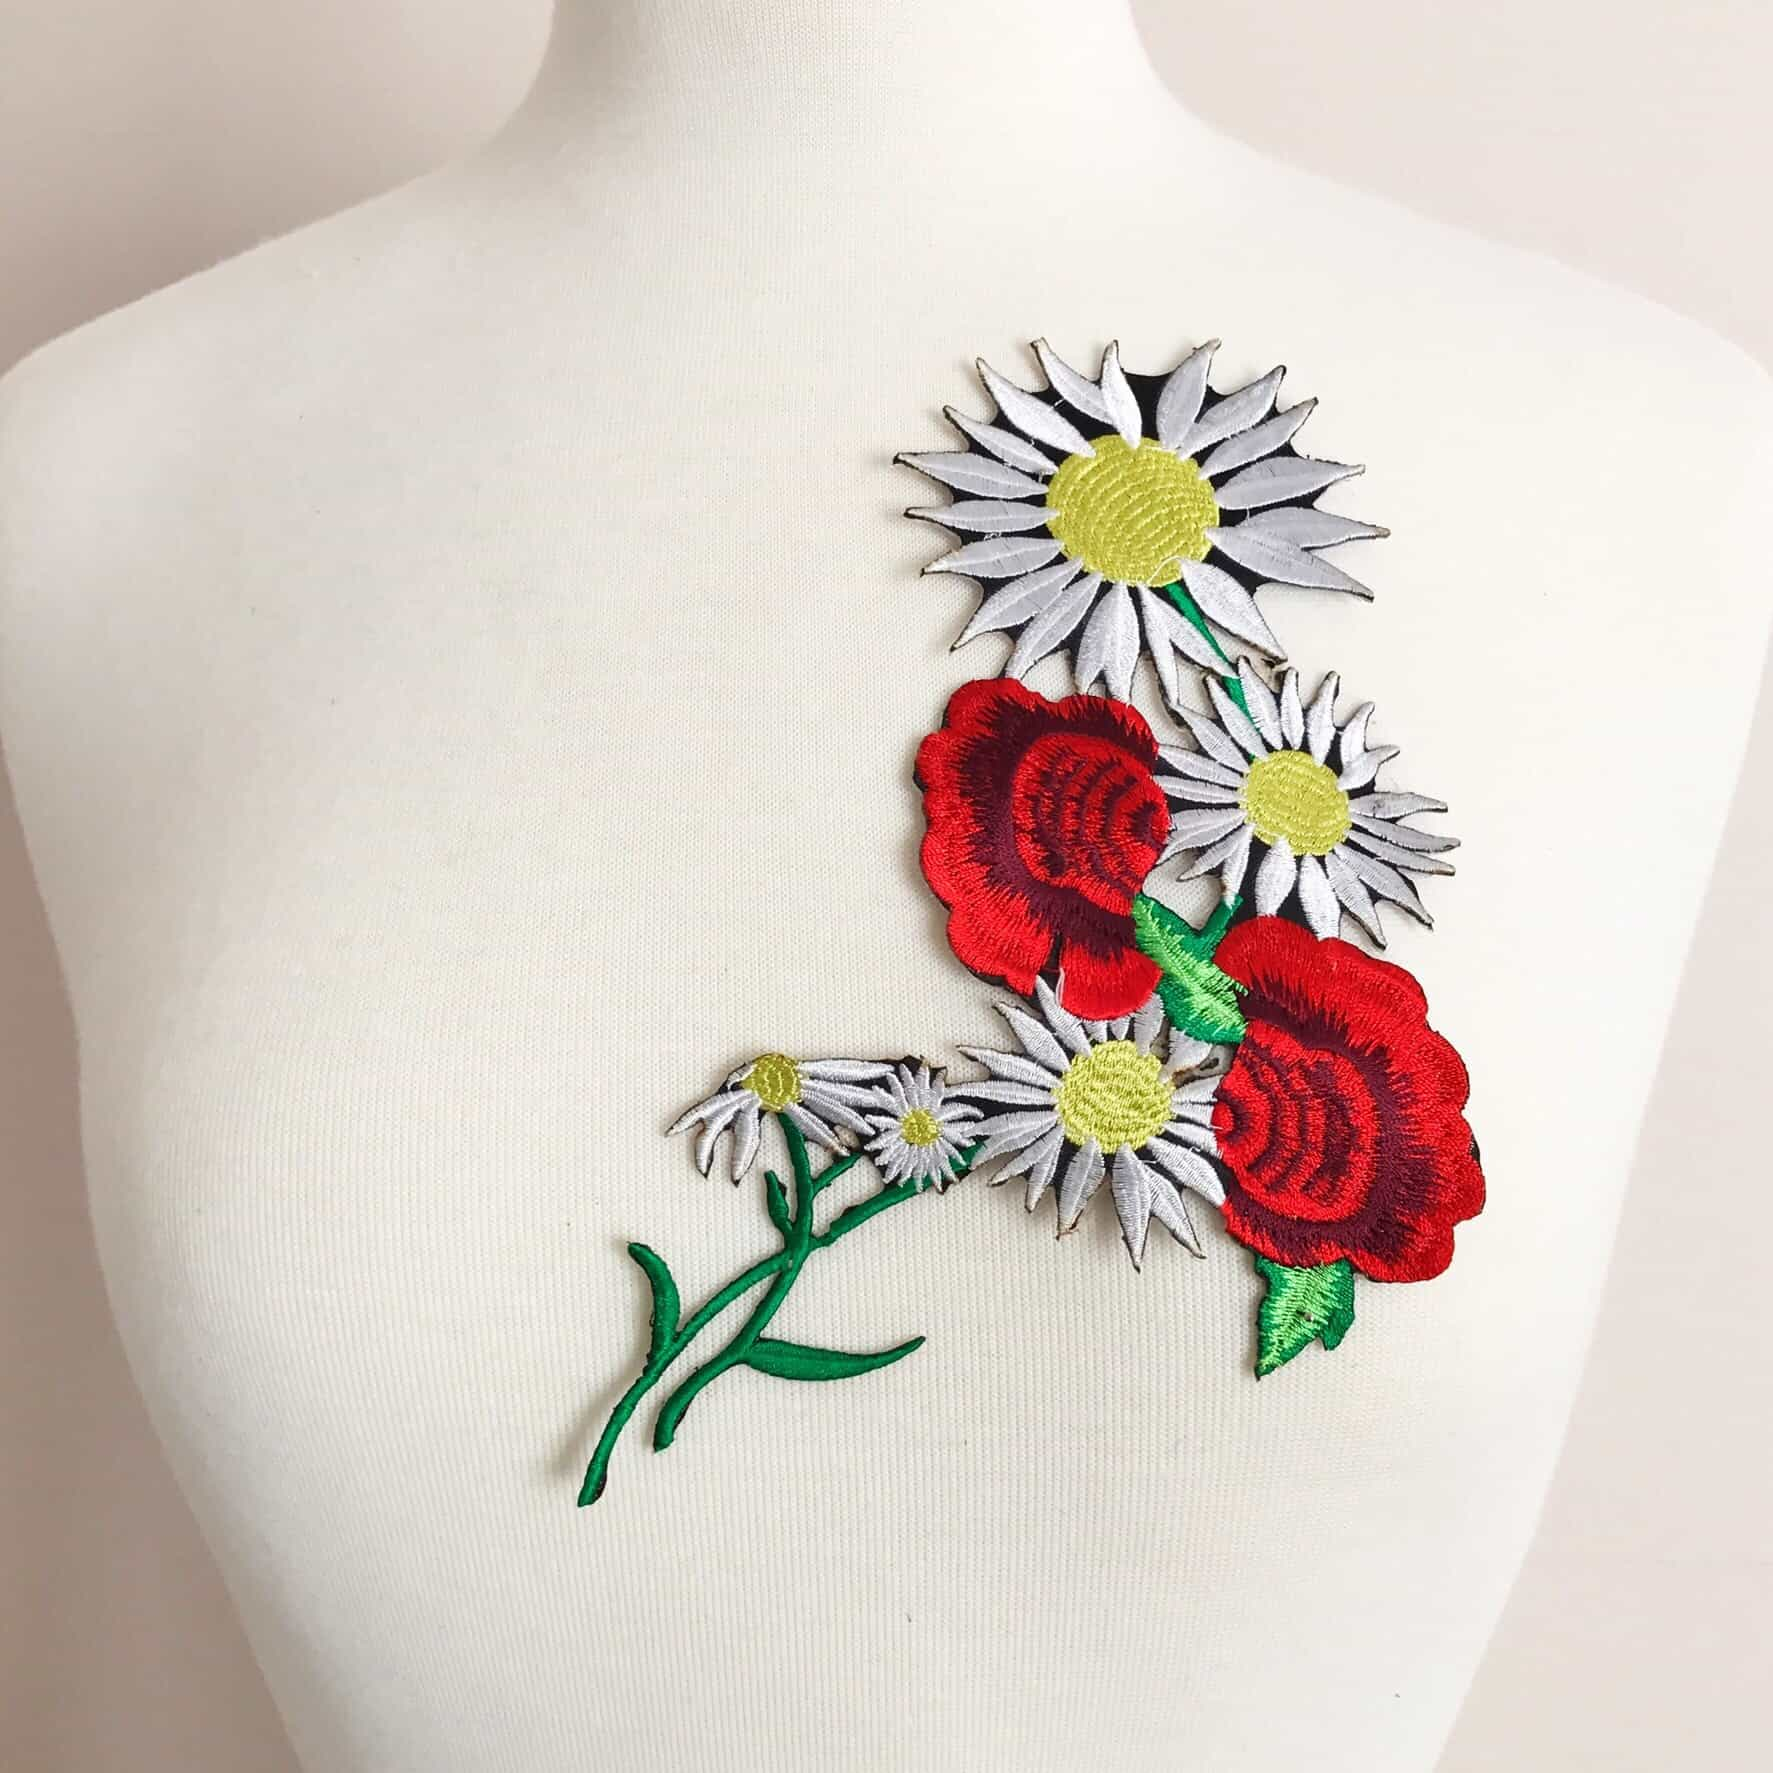 Embroidered Daisy Bouquet Applique